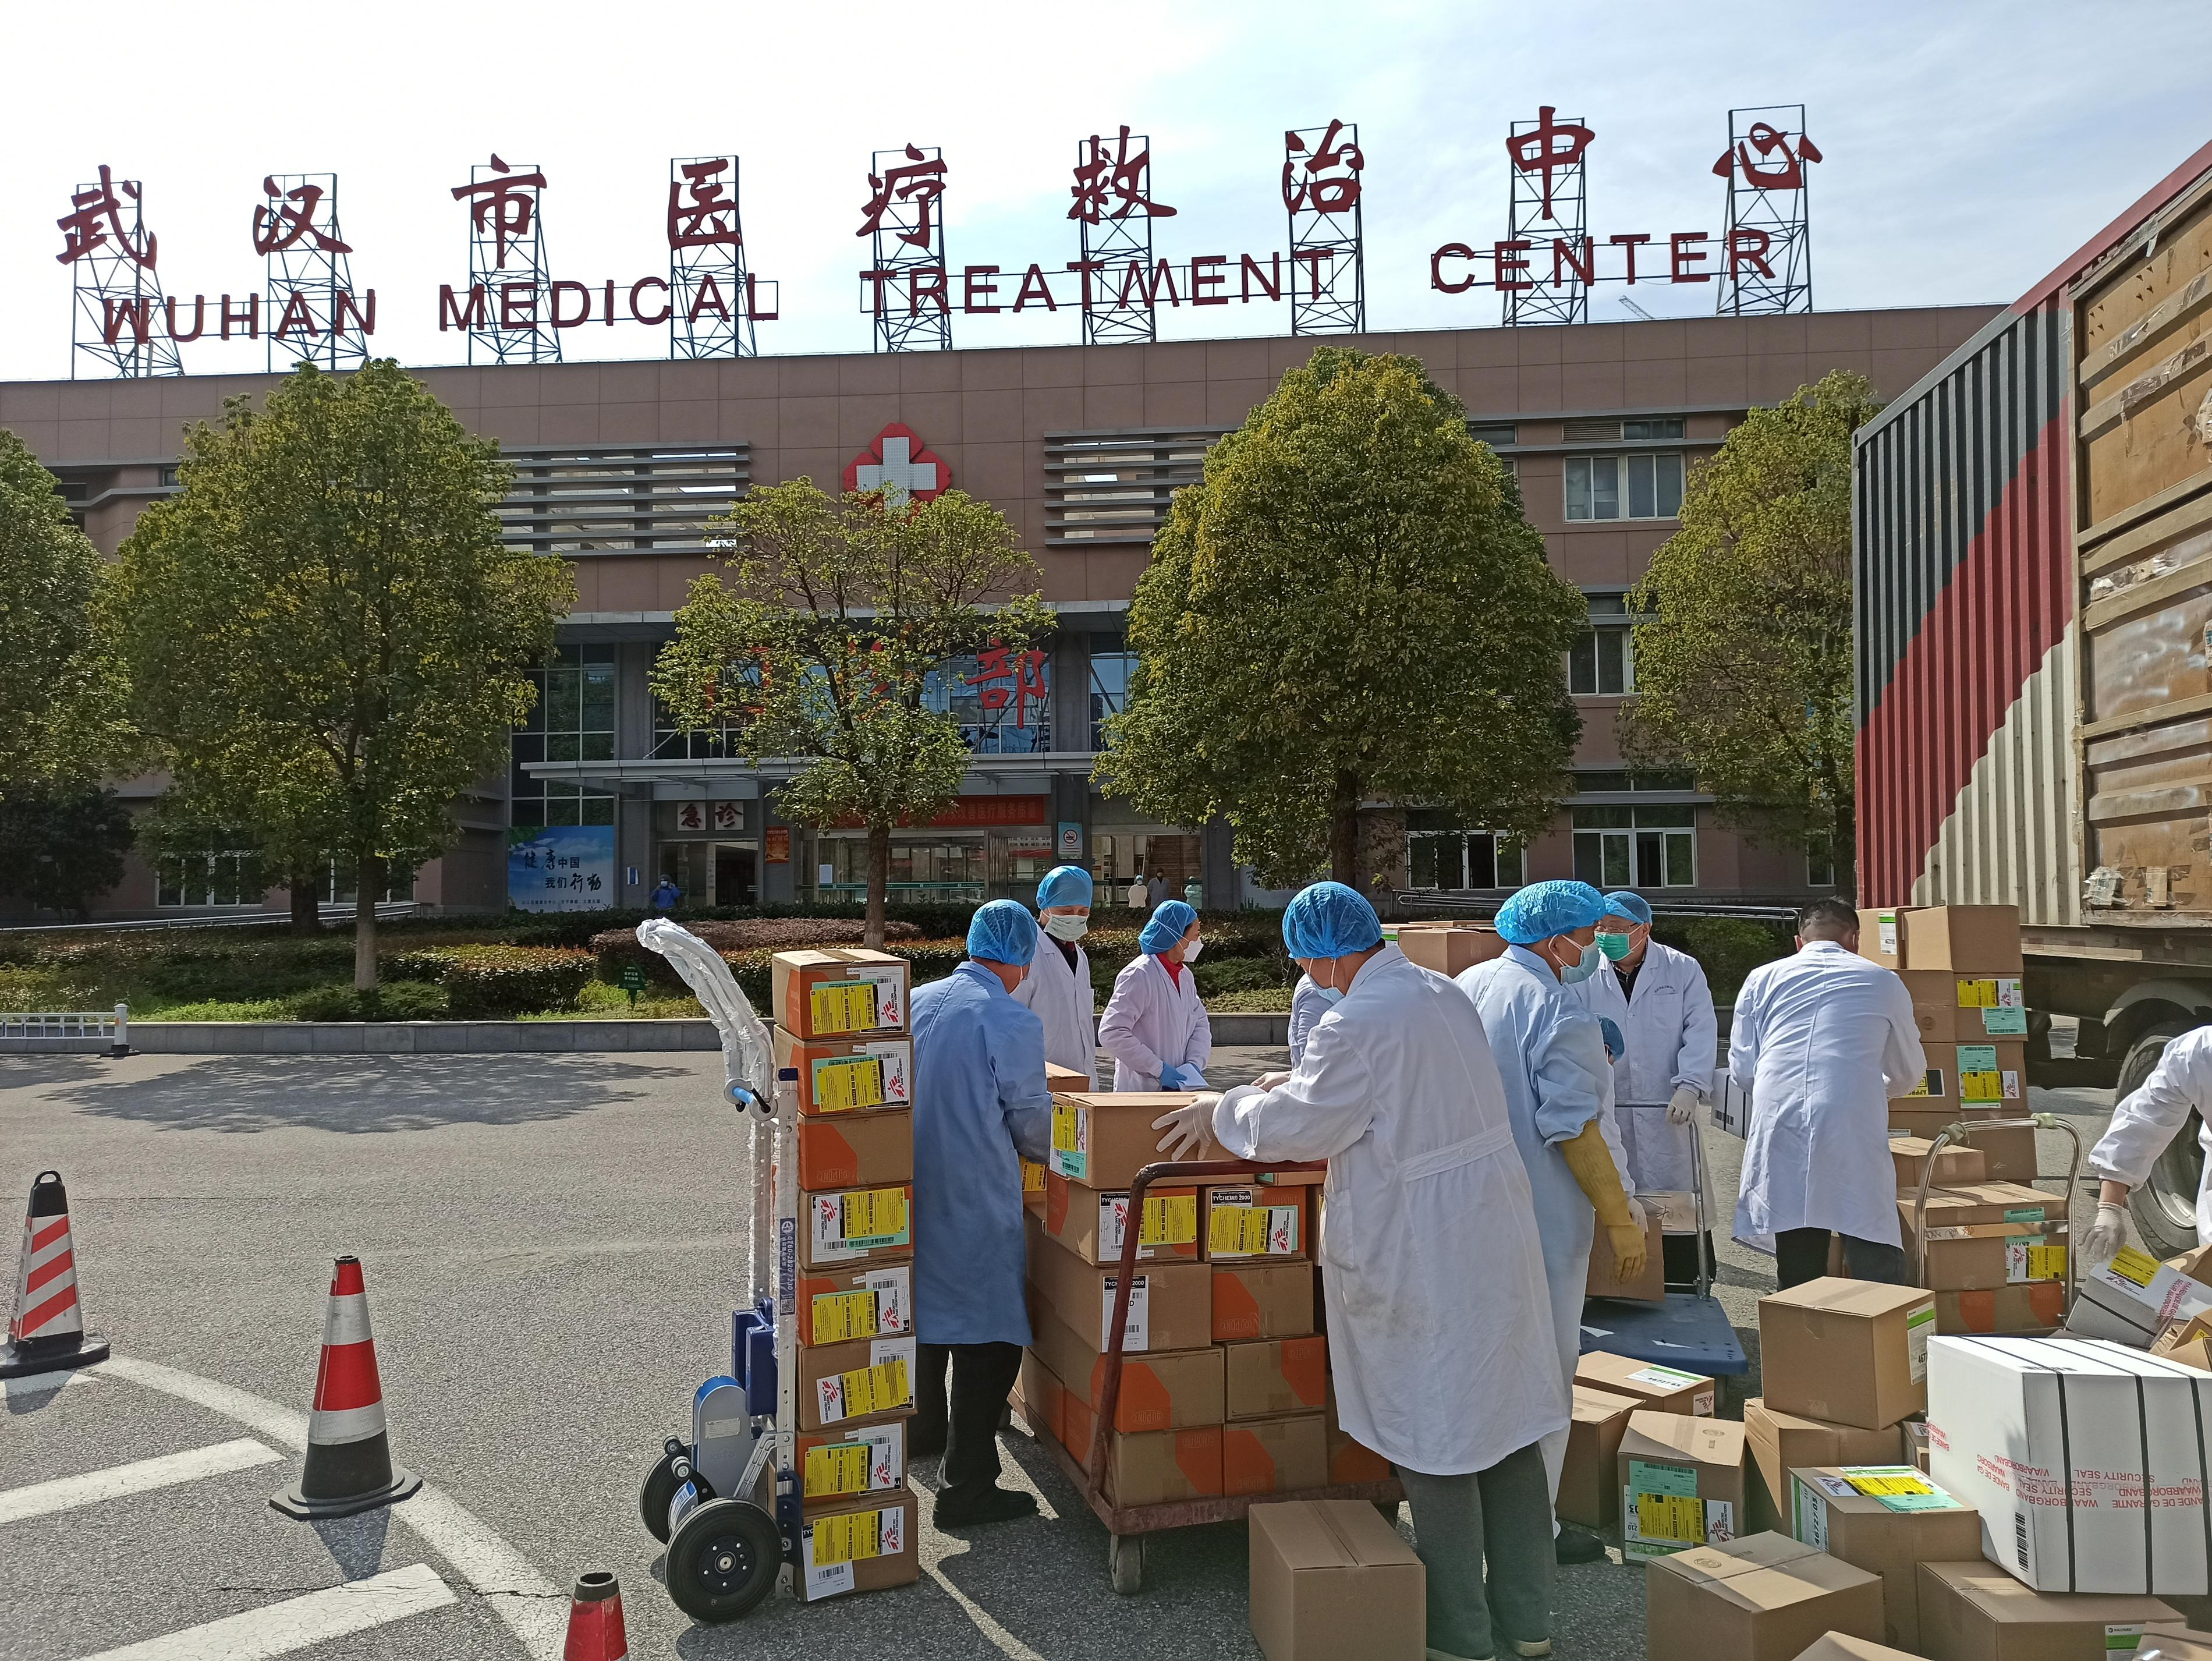 MSF donated 3.5 tonnes of personal protective equipment to health workers at the Wuhan Jinyintan Hospital in Hubei province. Wuhan Jinyintan Hospital is one of the designated hospitals providing treatment to COVID-19 patients, especially those in severe and critical conditions